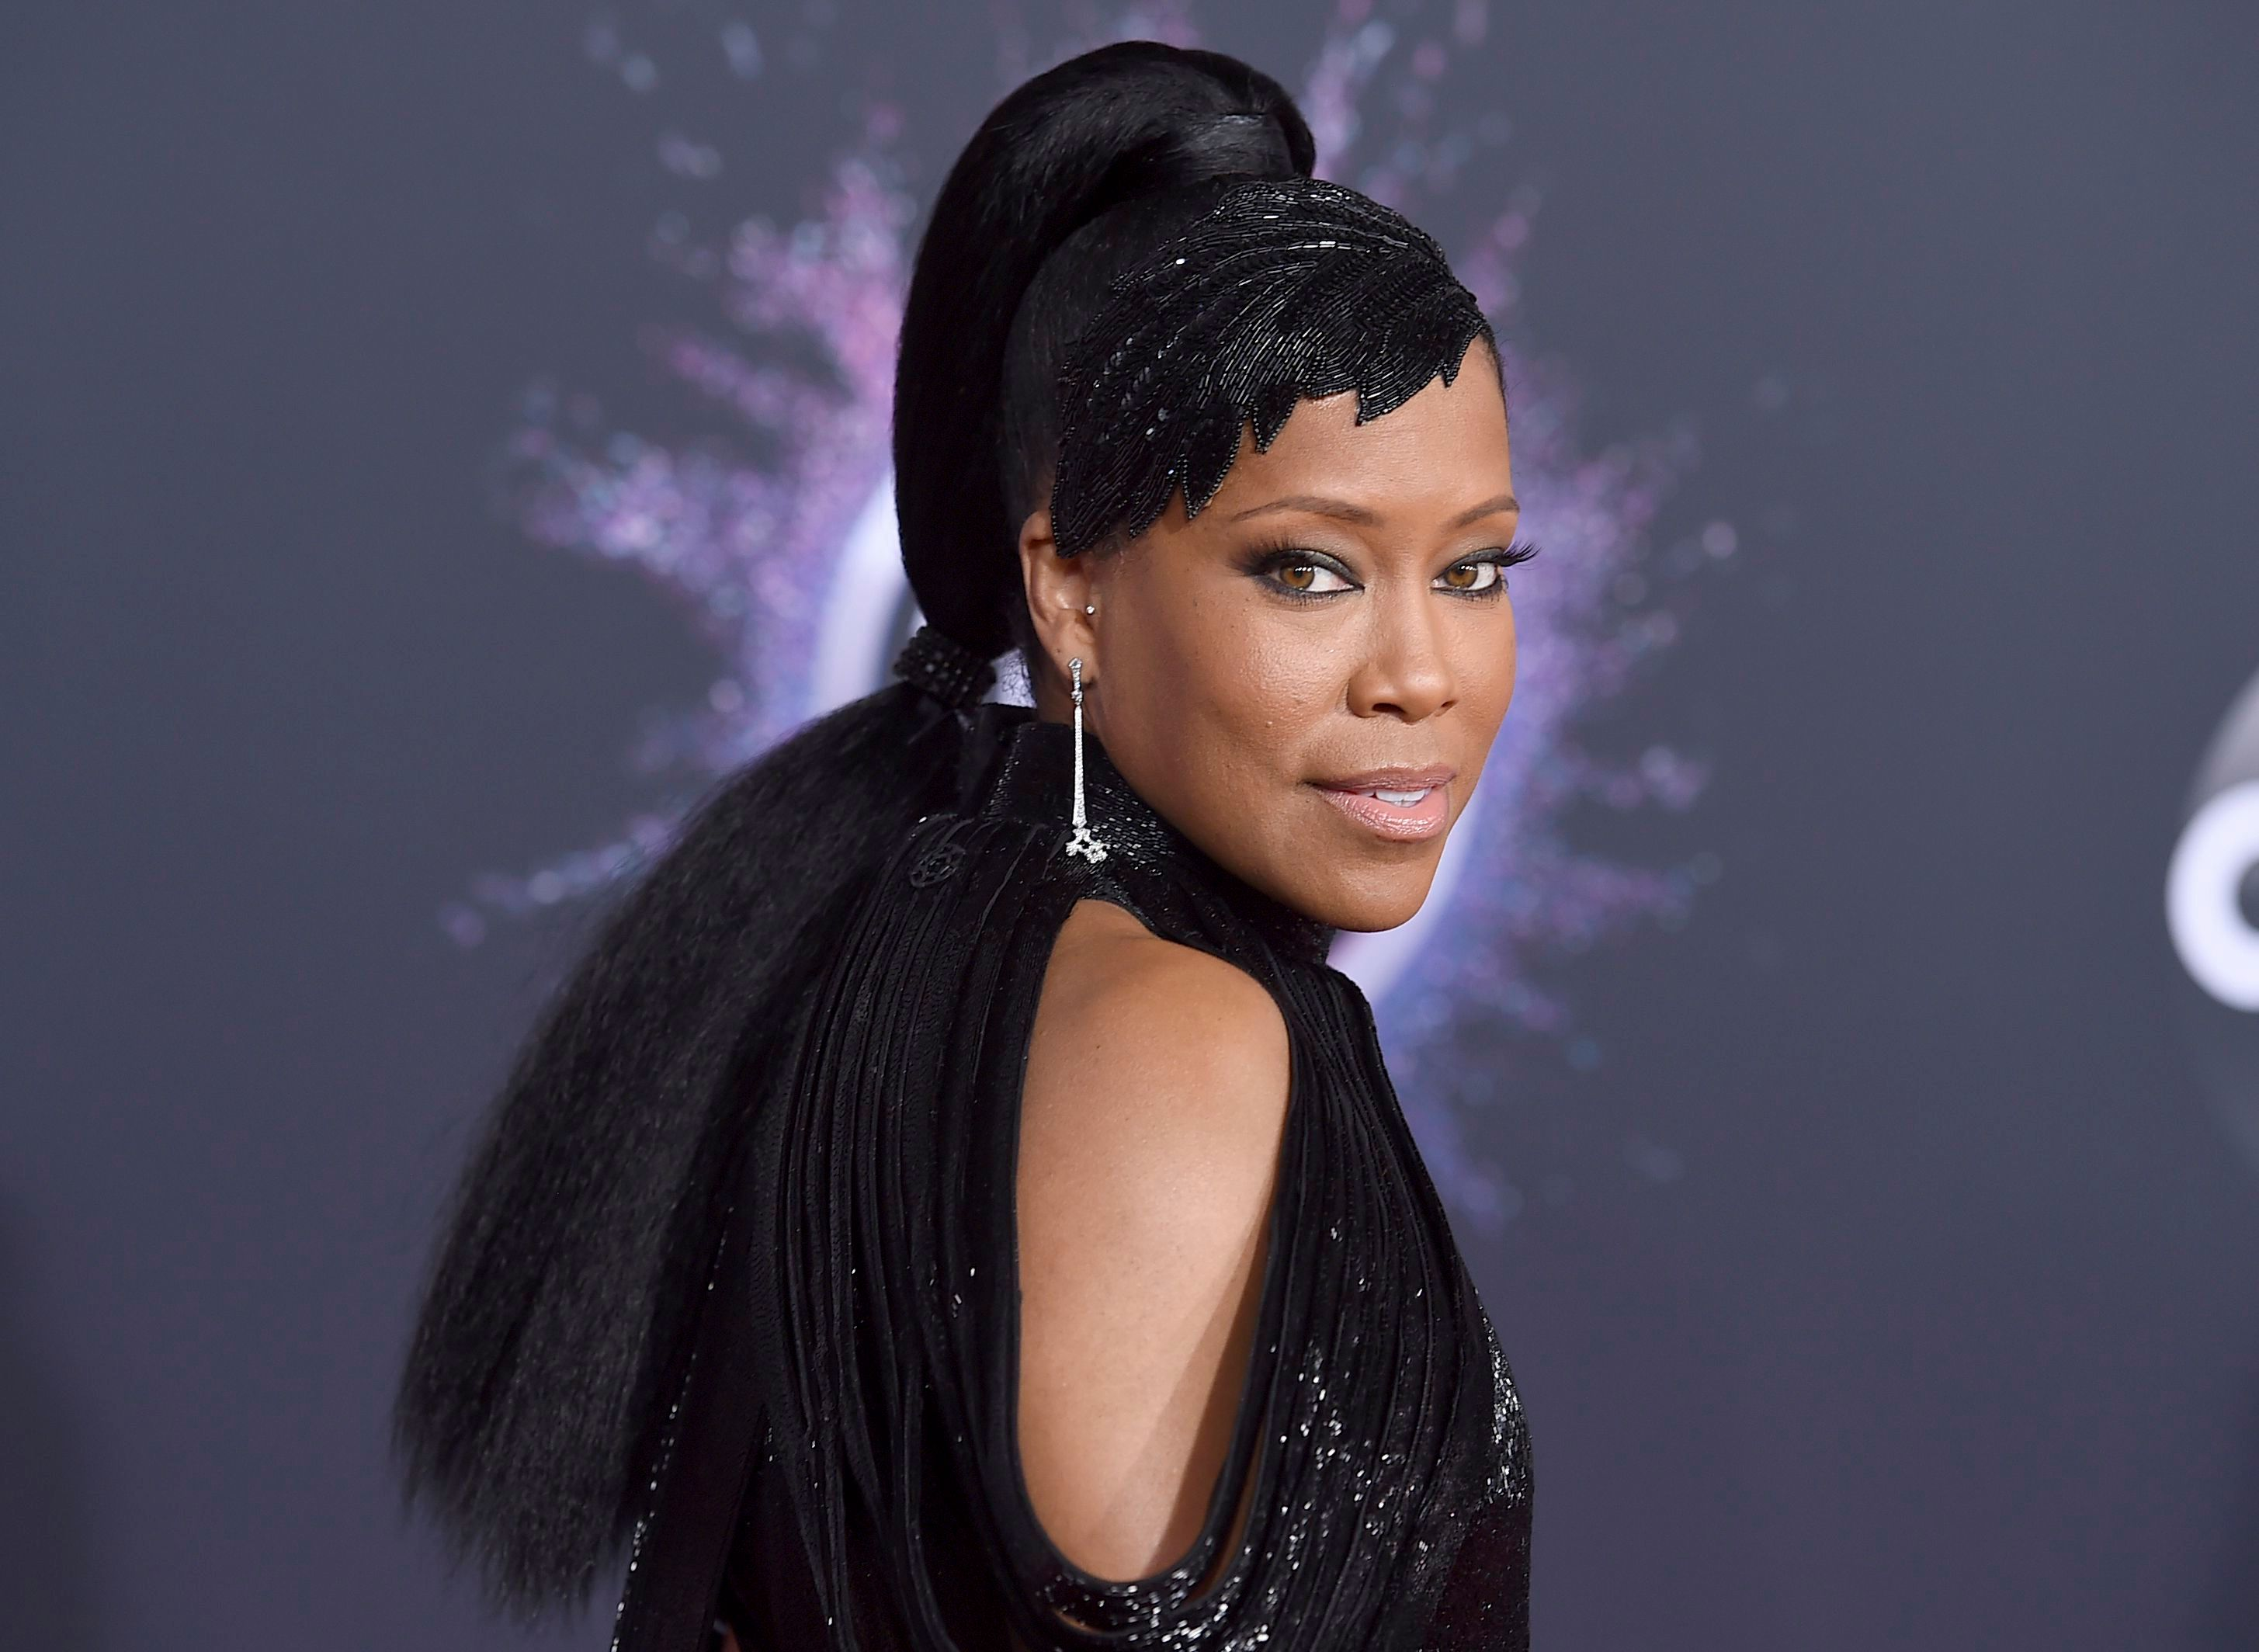 Regina King Starts Directing Debut One Night In Miami Kingsley Ben Adir Eli Goree Aldis Hodge Leslie Odom Jr Deadline